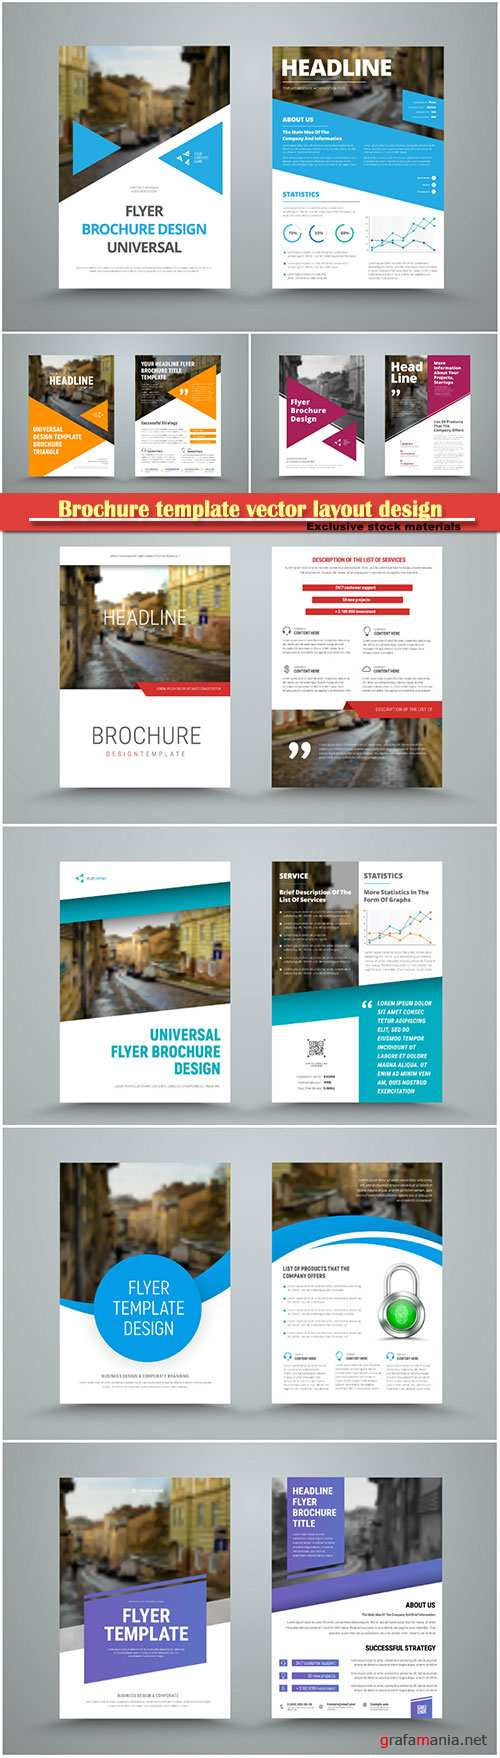 Brochure template vector layout design, corporate business annual report, magazine, flyer mockup # 171